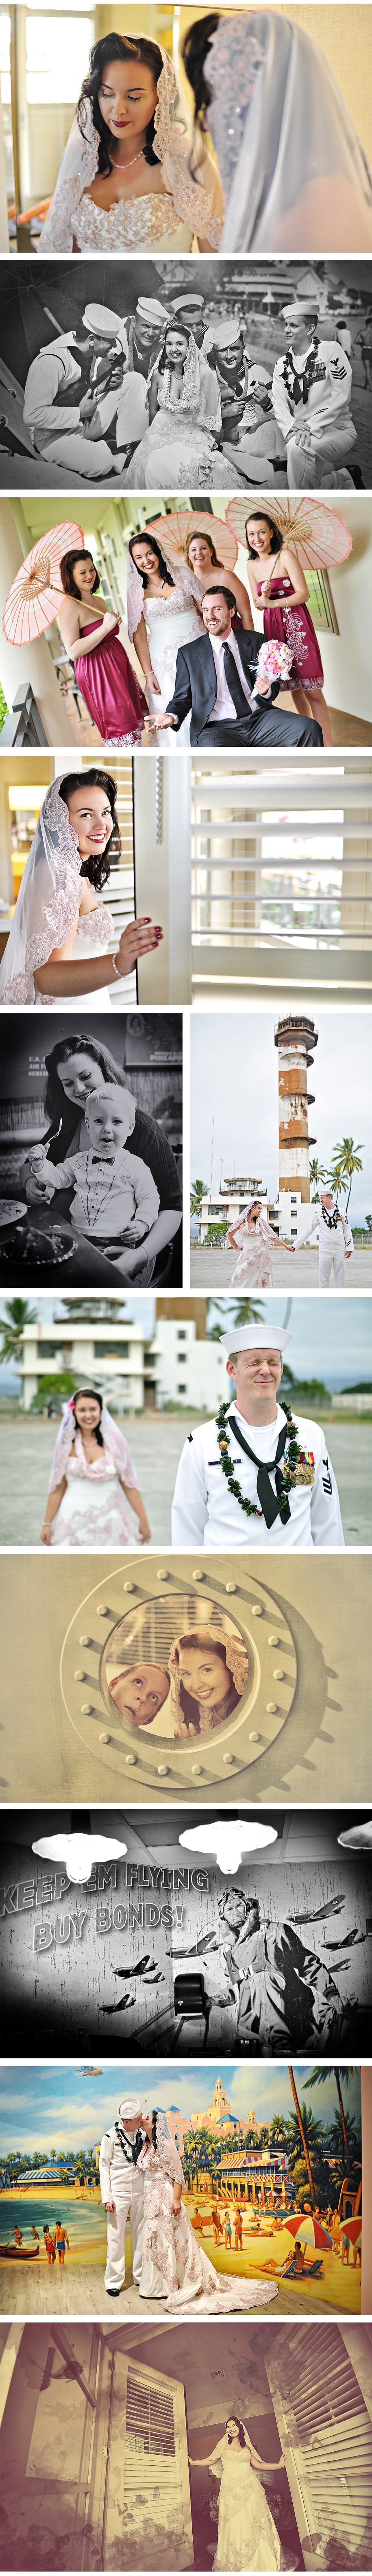 Stephen Ludwig Wedding Photography - Pearl Harbor Wedding - Part 2